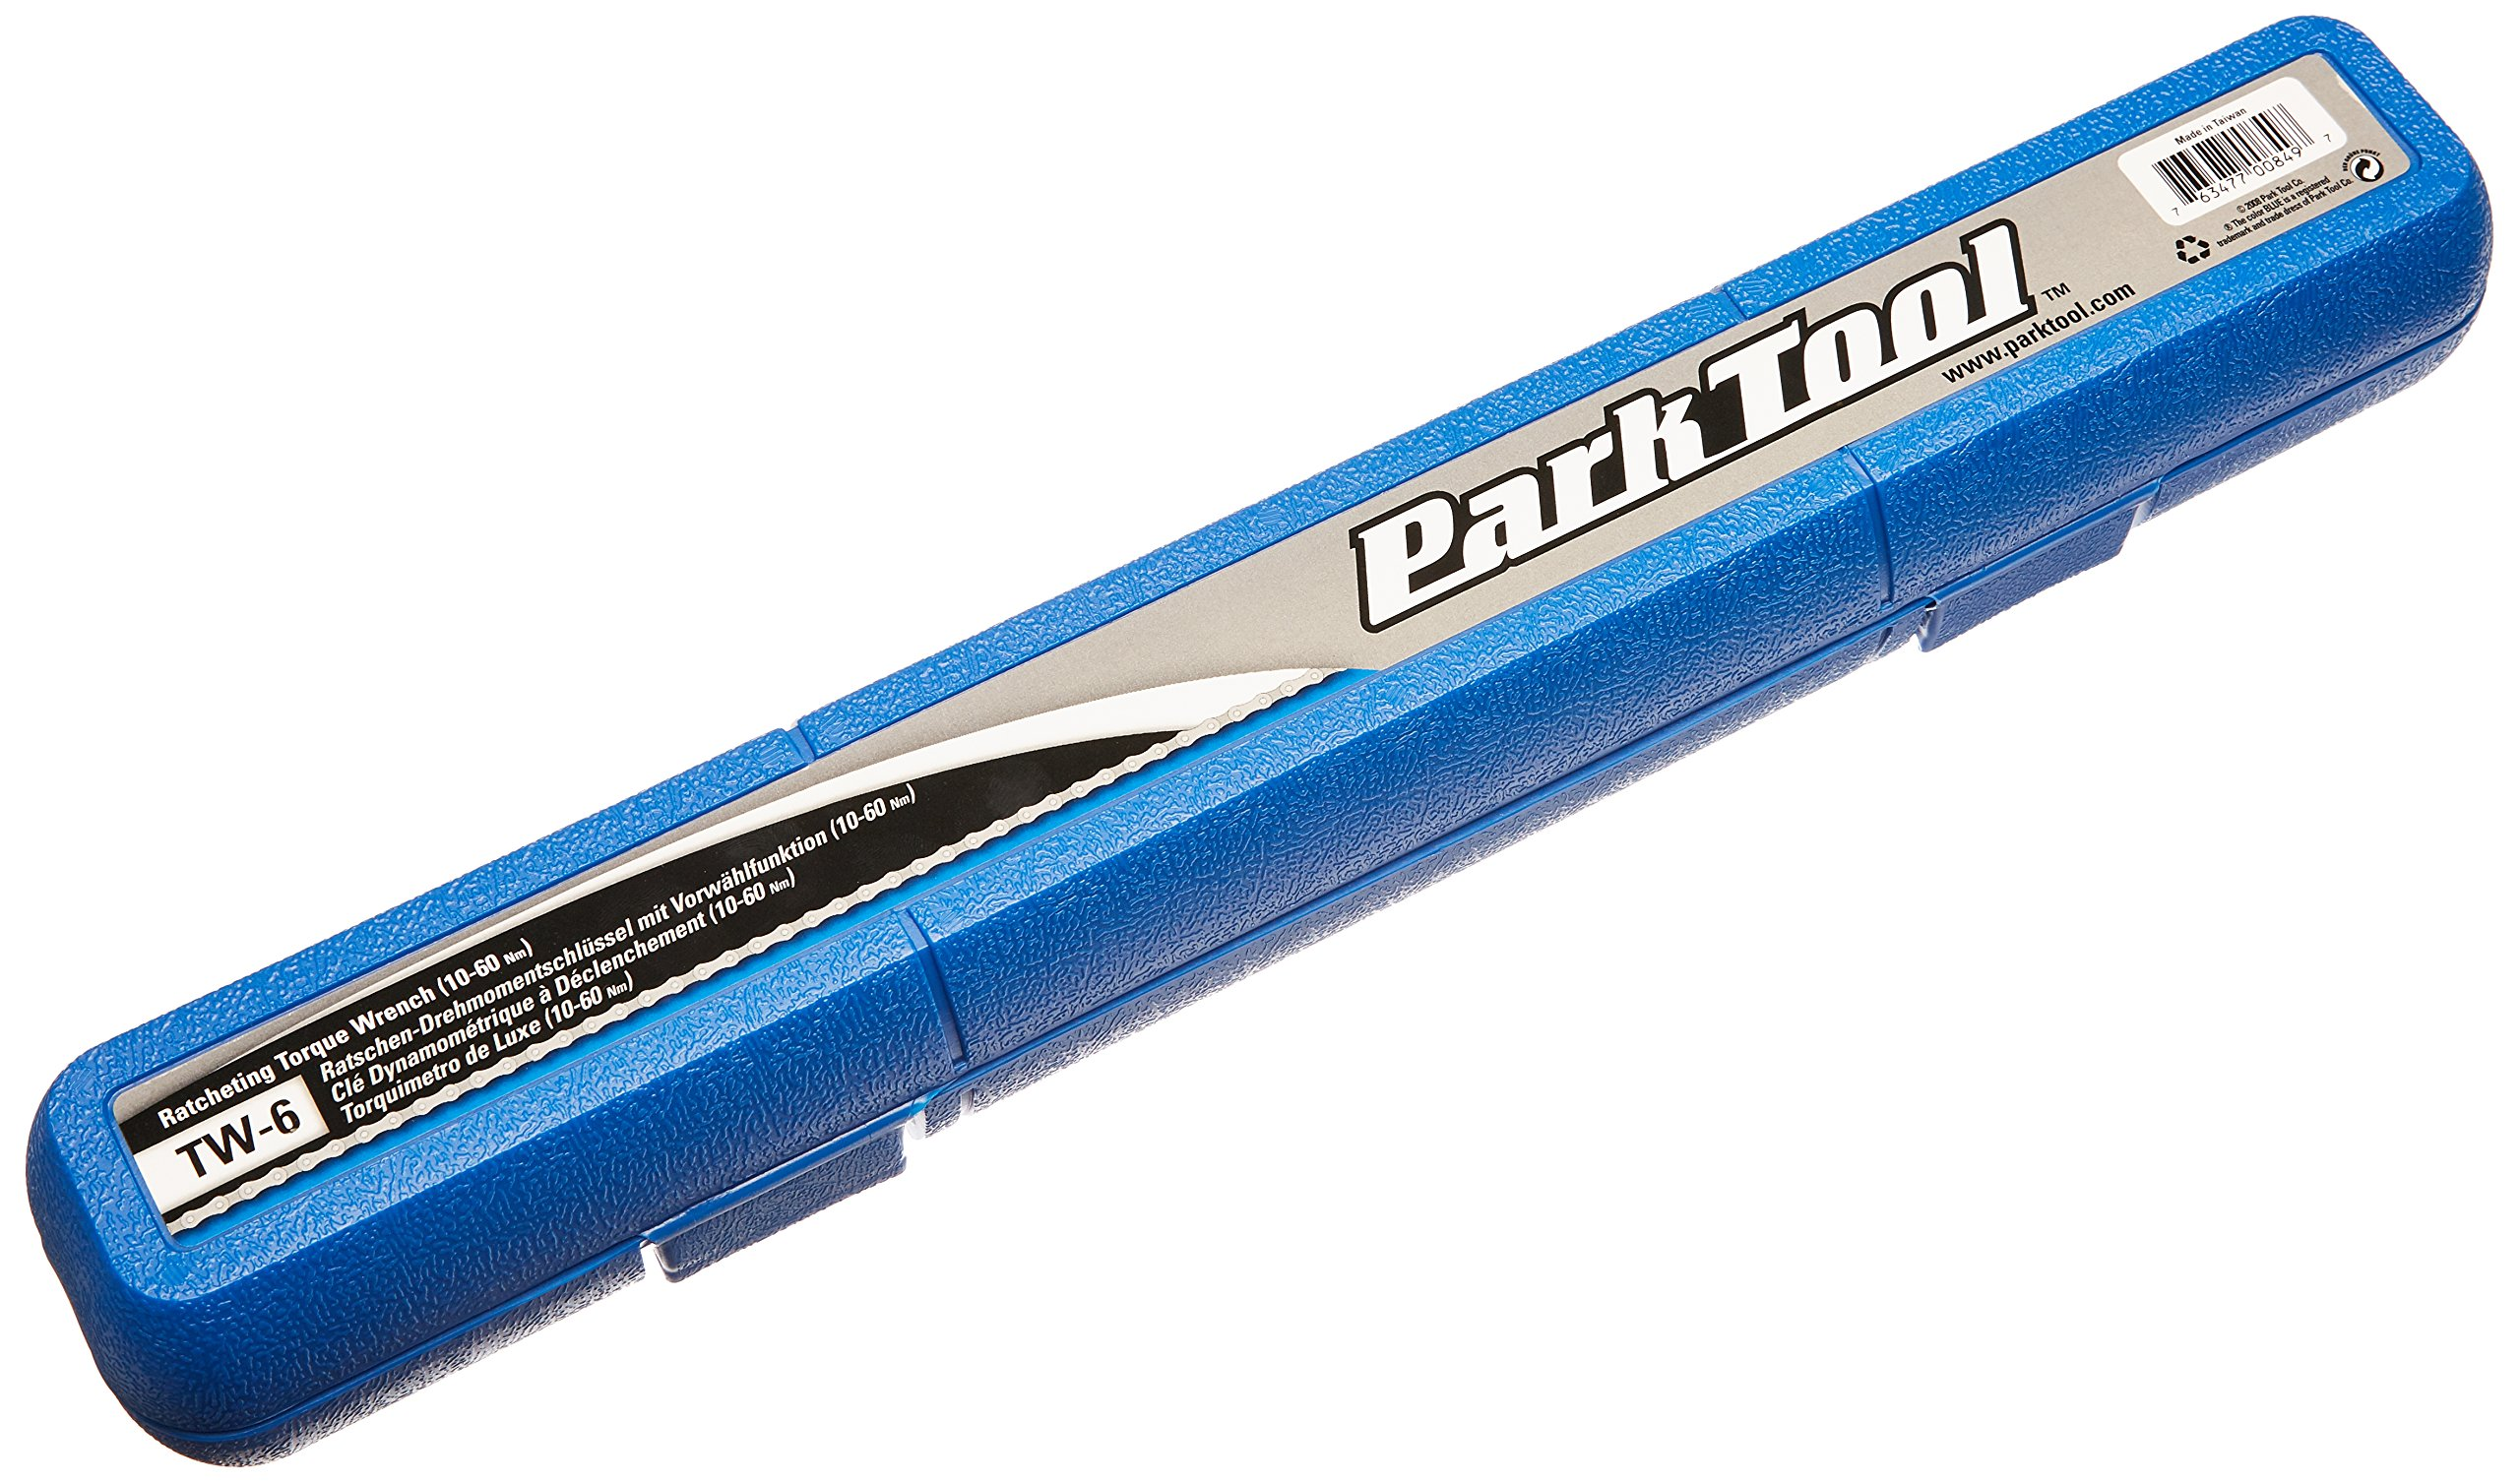 Park Tool TW- 5.2 - Ratcheting Click Type Torque Wrench, 7 1/2-Inch by Park Tool (Image #3)